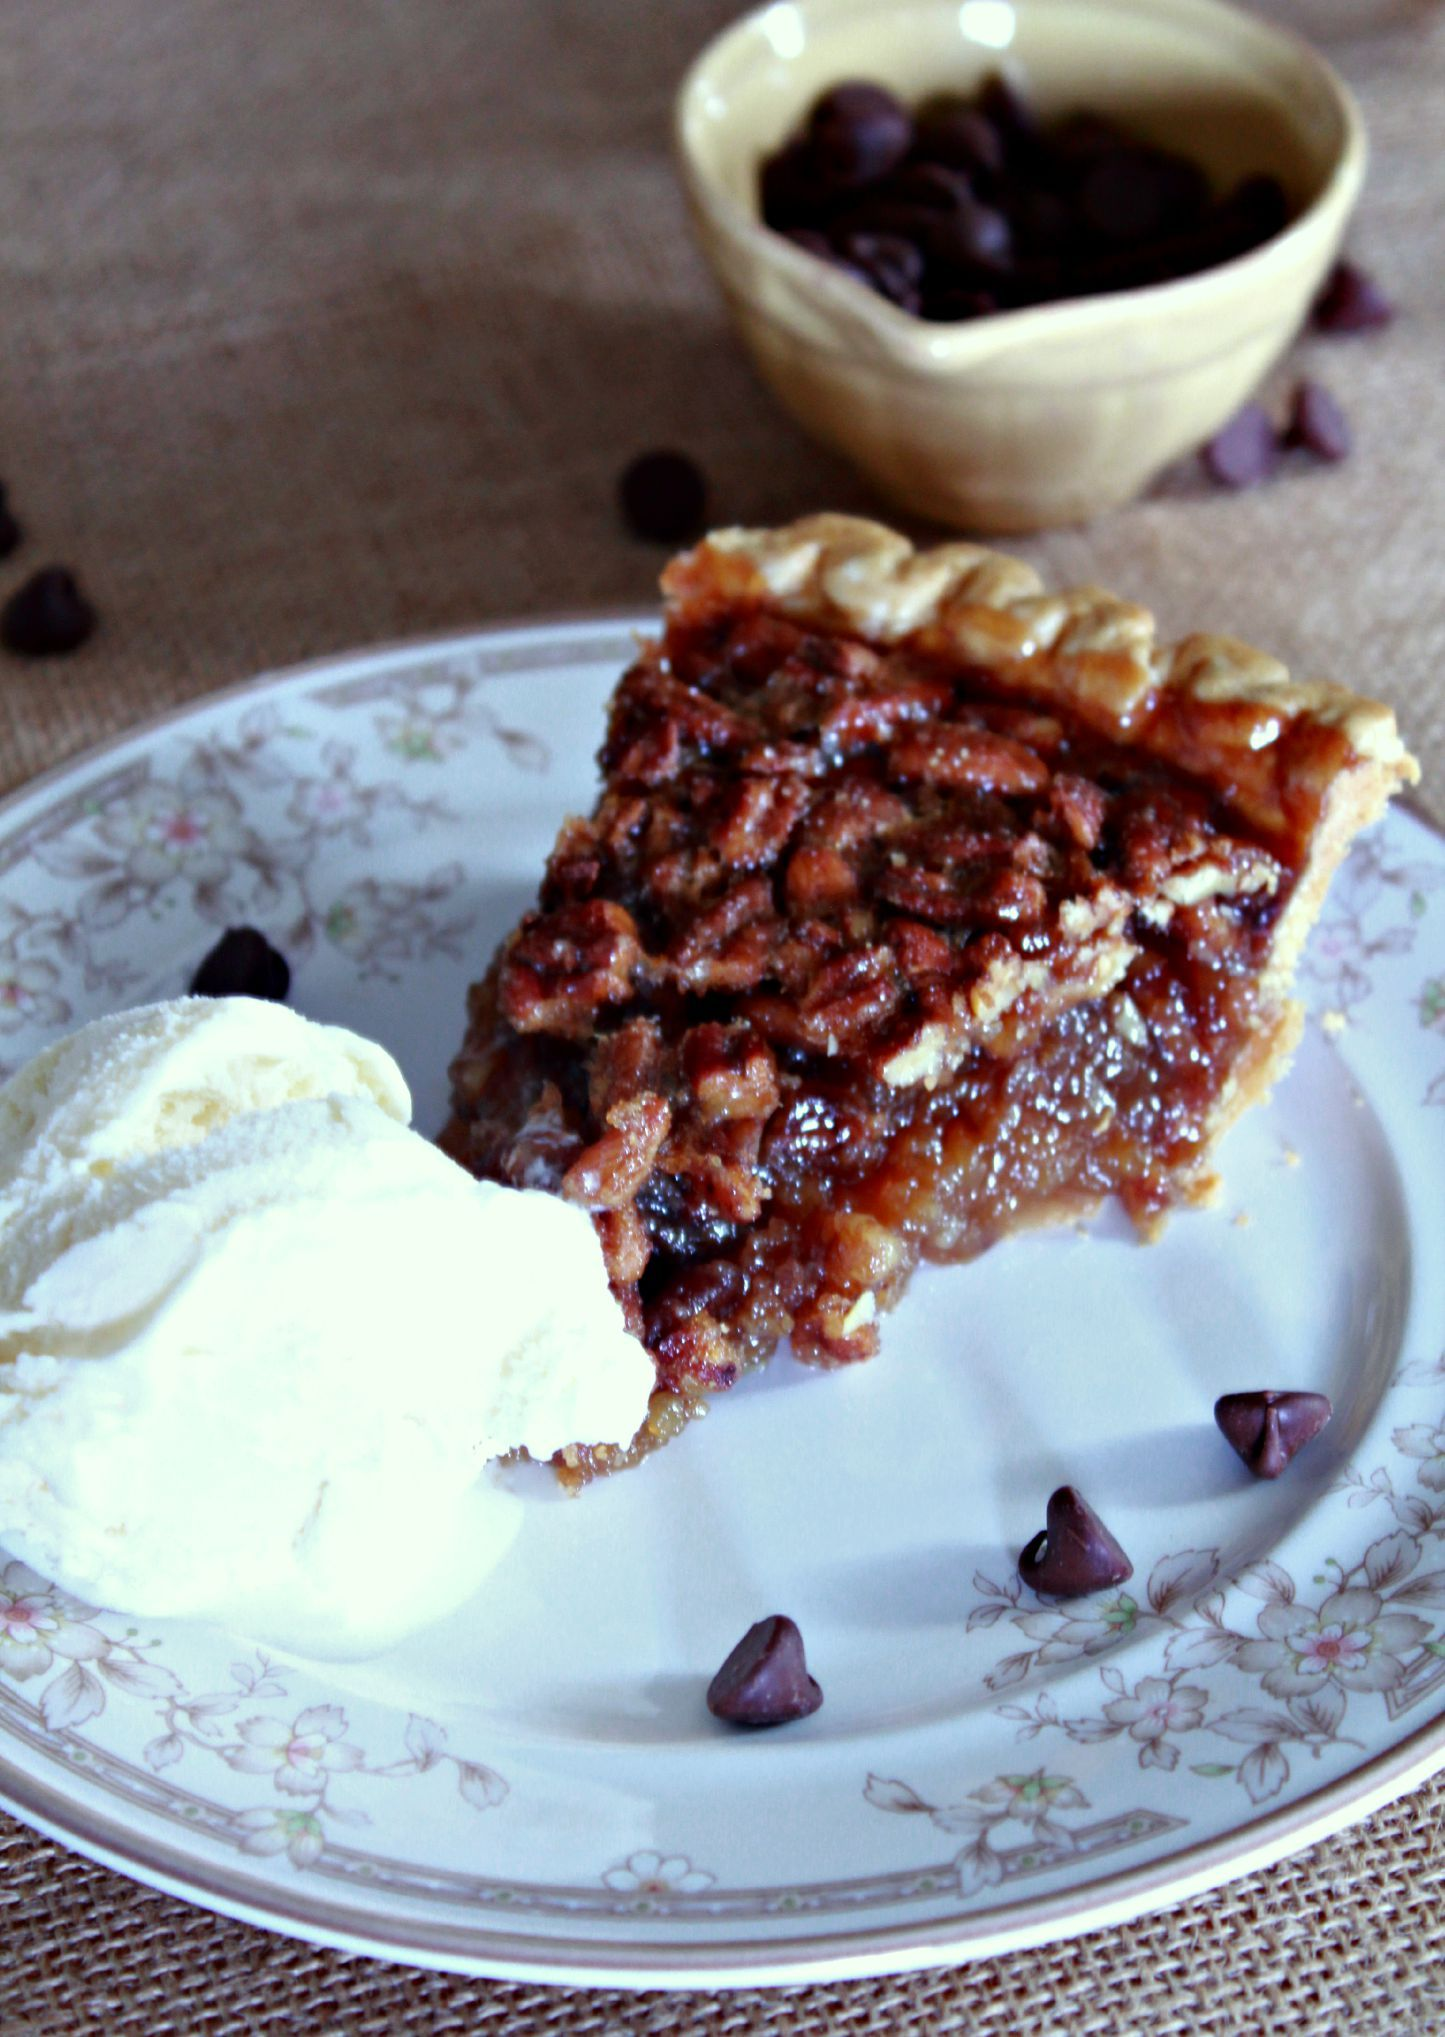 Chocolate Chip Pecan Pie Two Bird Perch Chocolate Chip Pecan Pie Pecan Pie Recipe Desserts